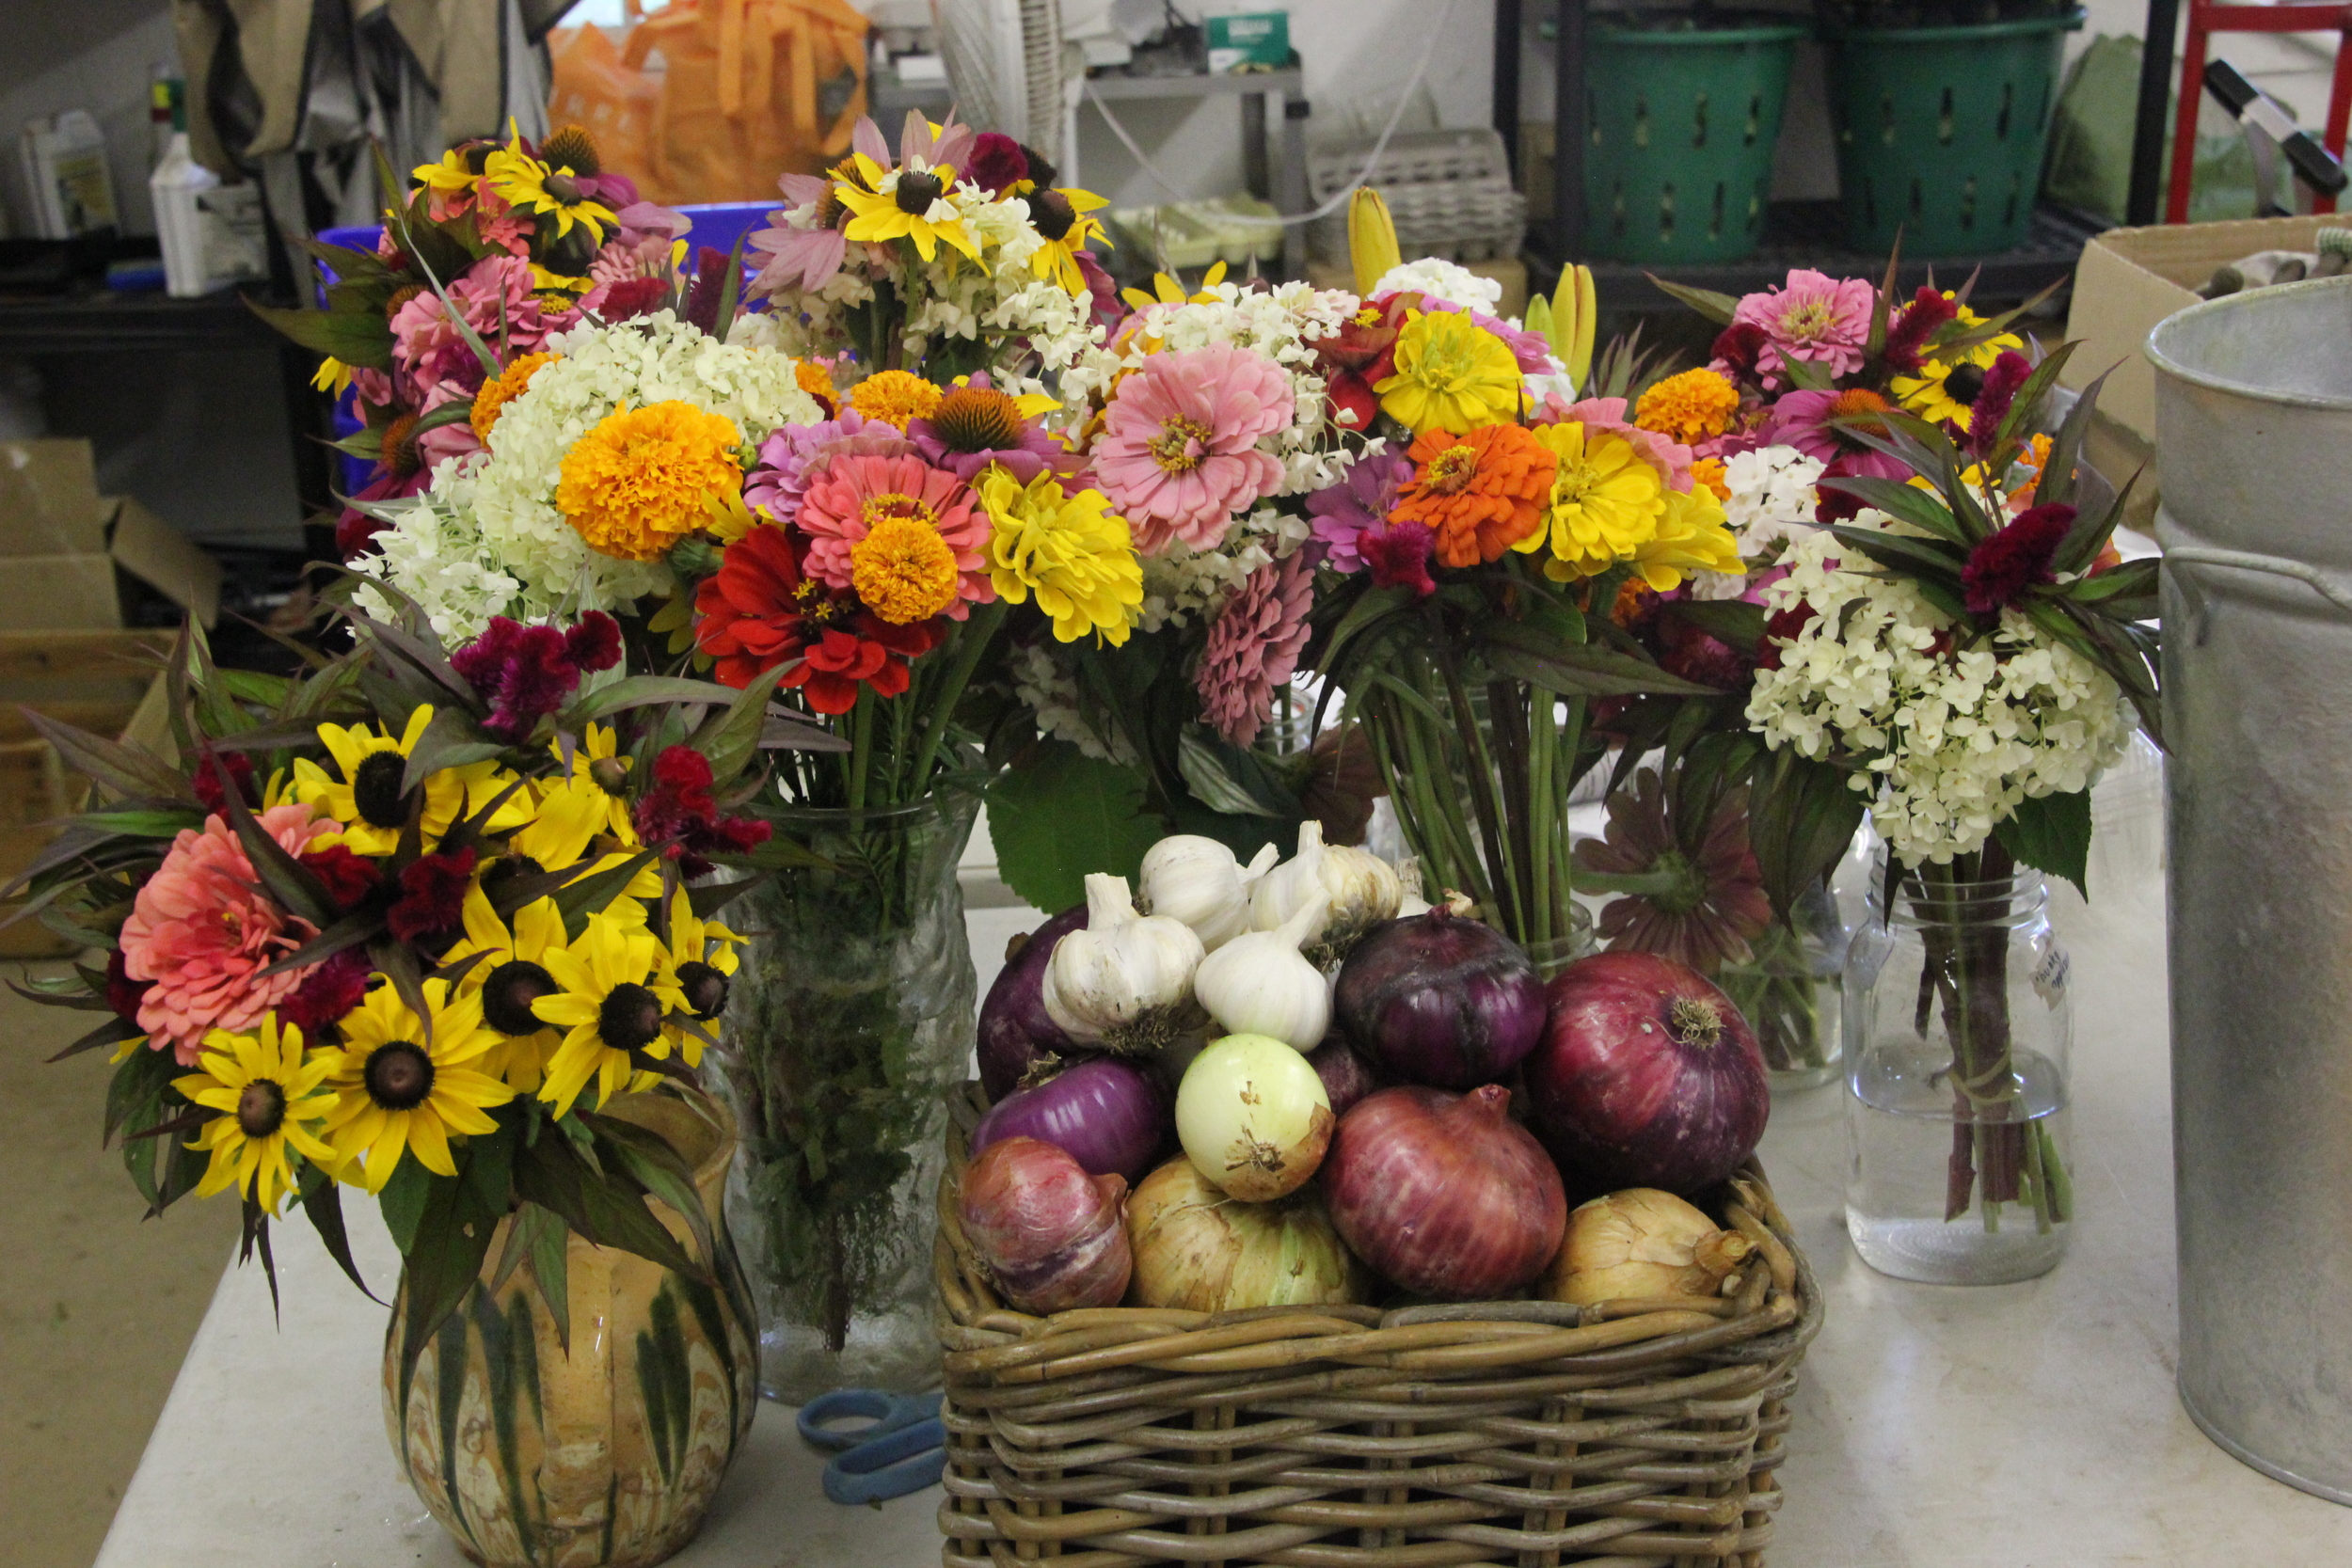 The results of all that hard work. The girls' flower bouquets, as well as garlic and onions, are ready for market.